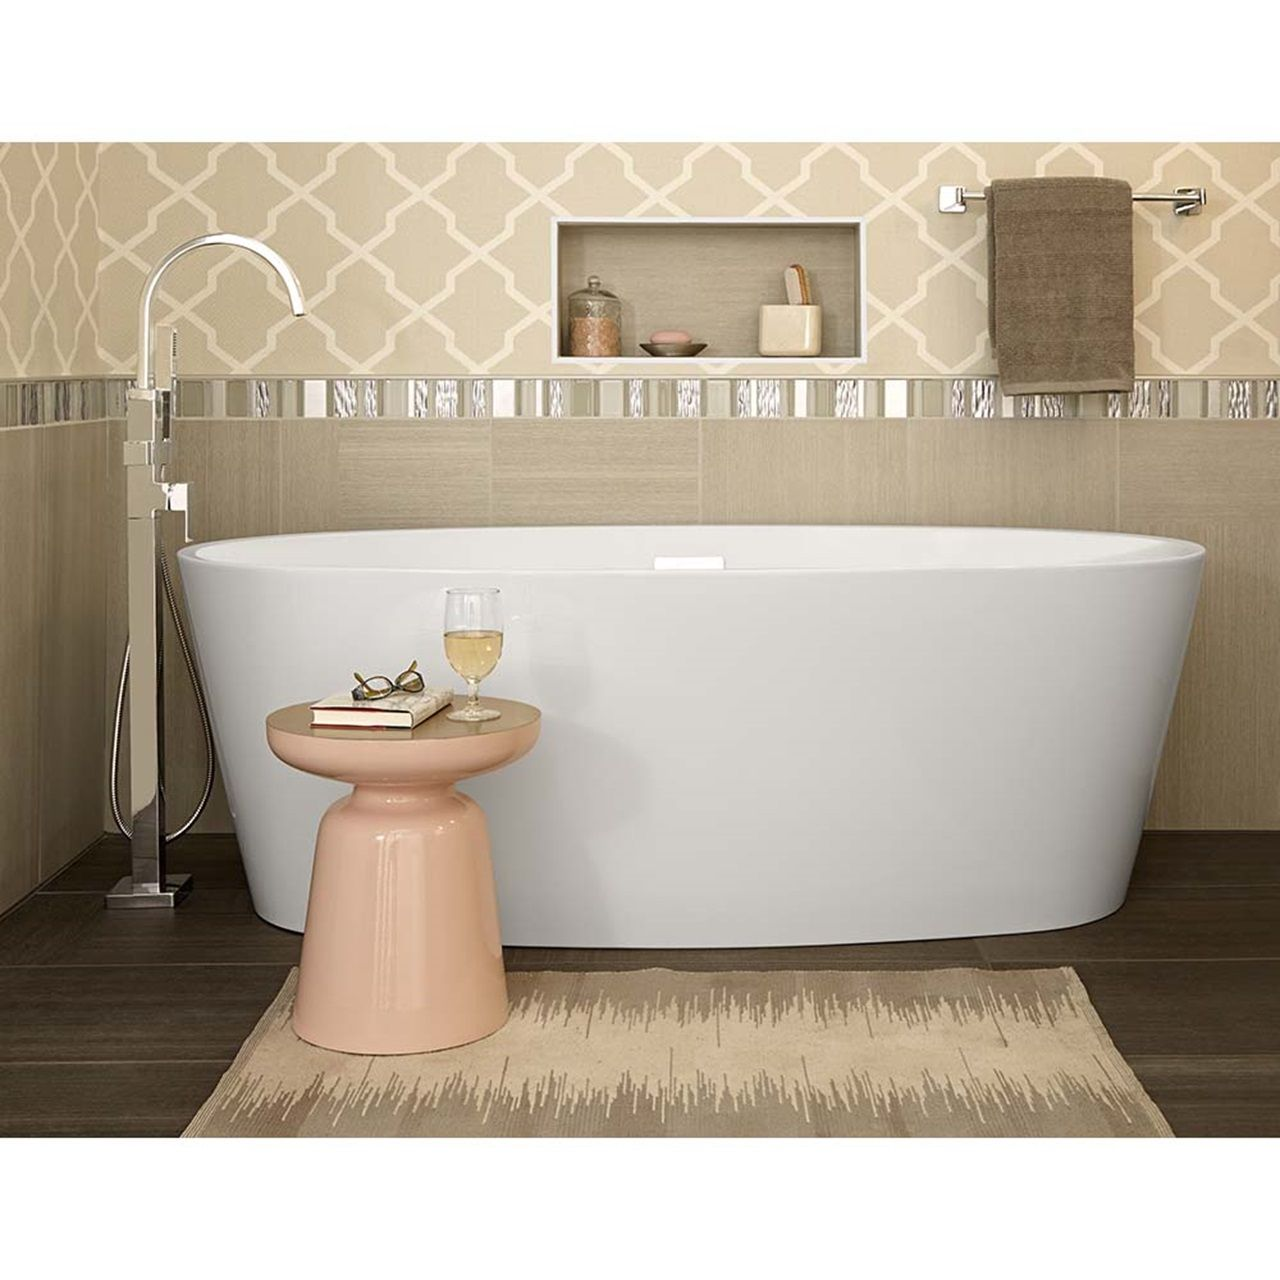 Coastal Serin Freestanding Soaker Tub American Standard With